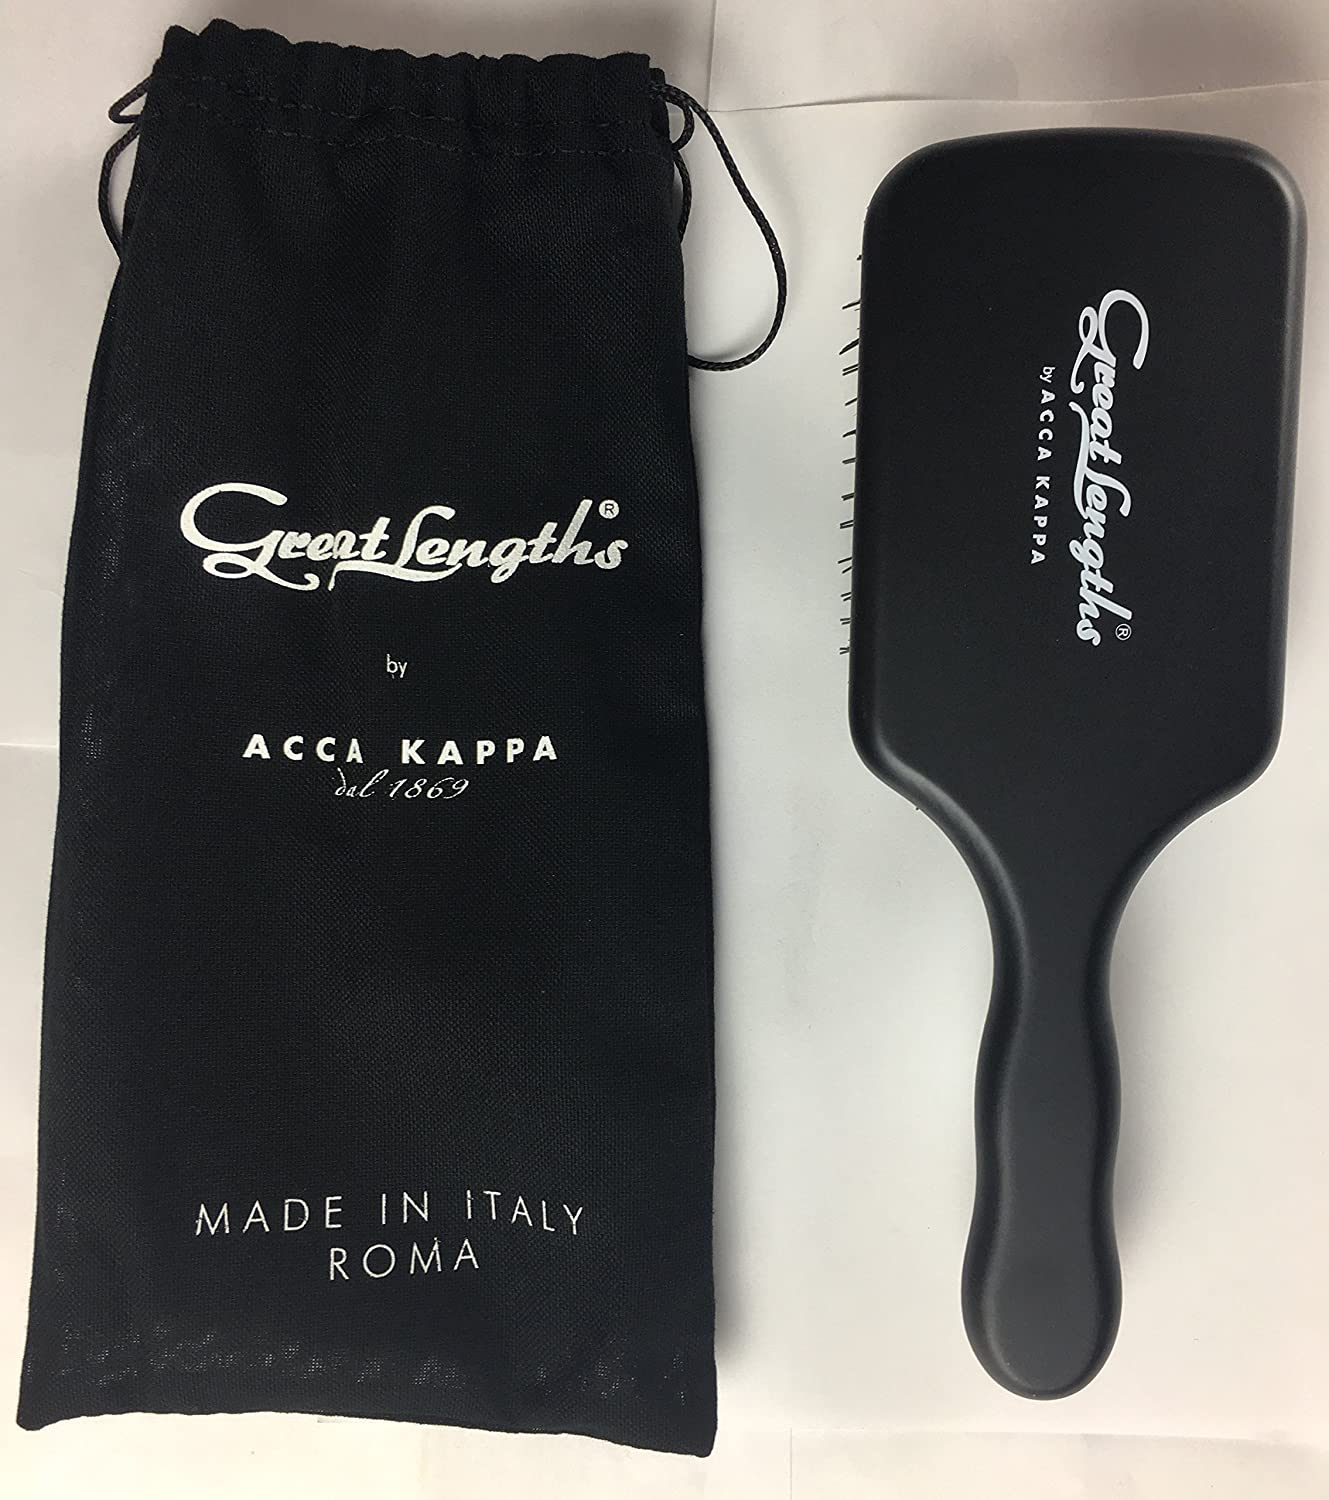 Great Lengths Square Paddle Brush by ACCA KAPPA Made in Italy Wood and Boar Bristle 91Px9pQBF6L._SL1500_